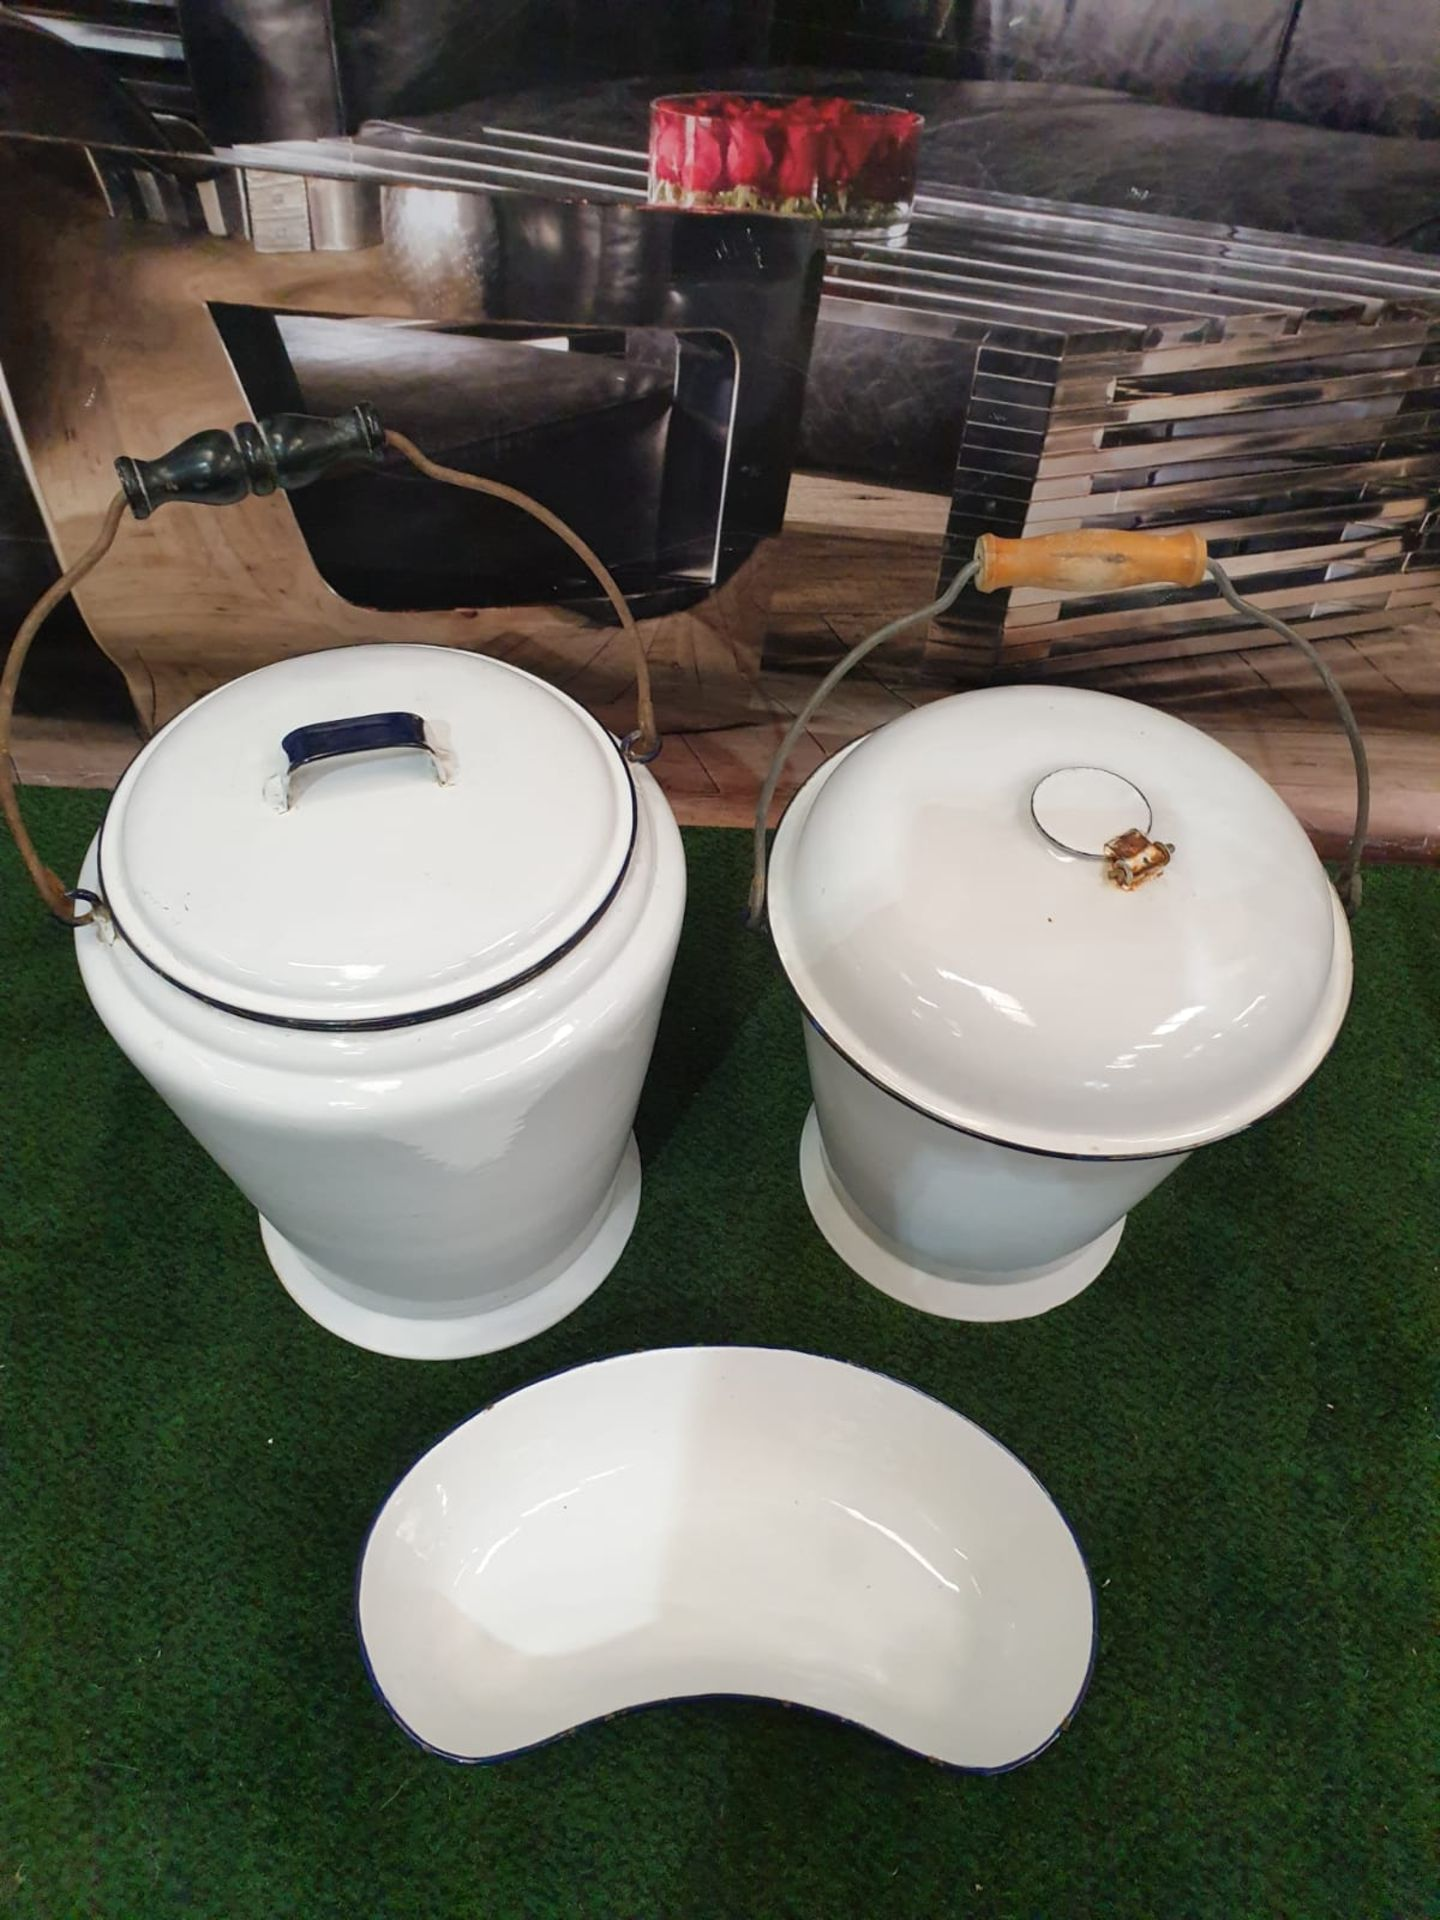 White enamel ware compirsing of a Bucket, pail and kidney bowl - Image 2 of 3